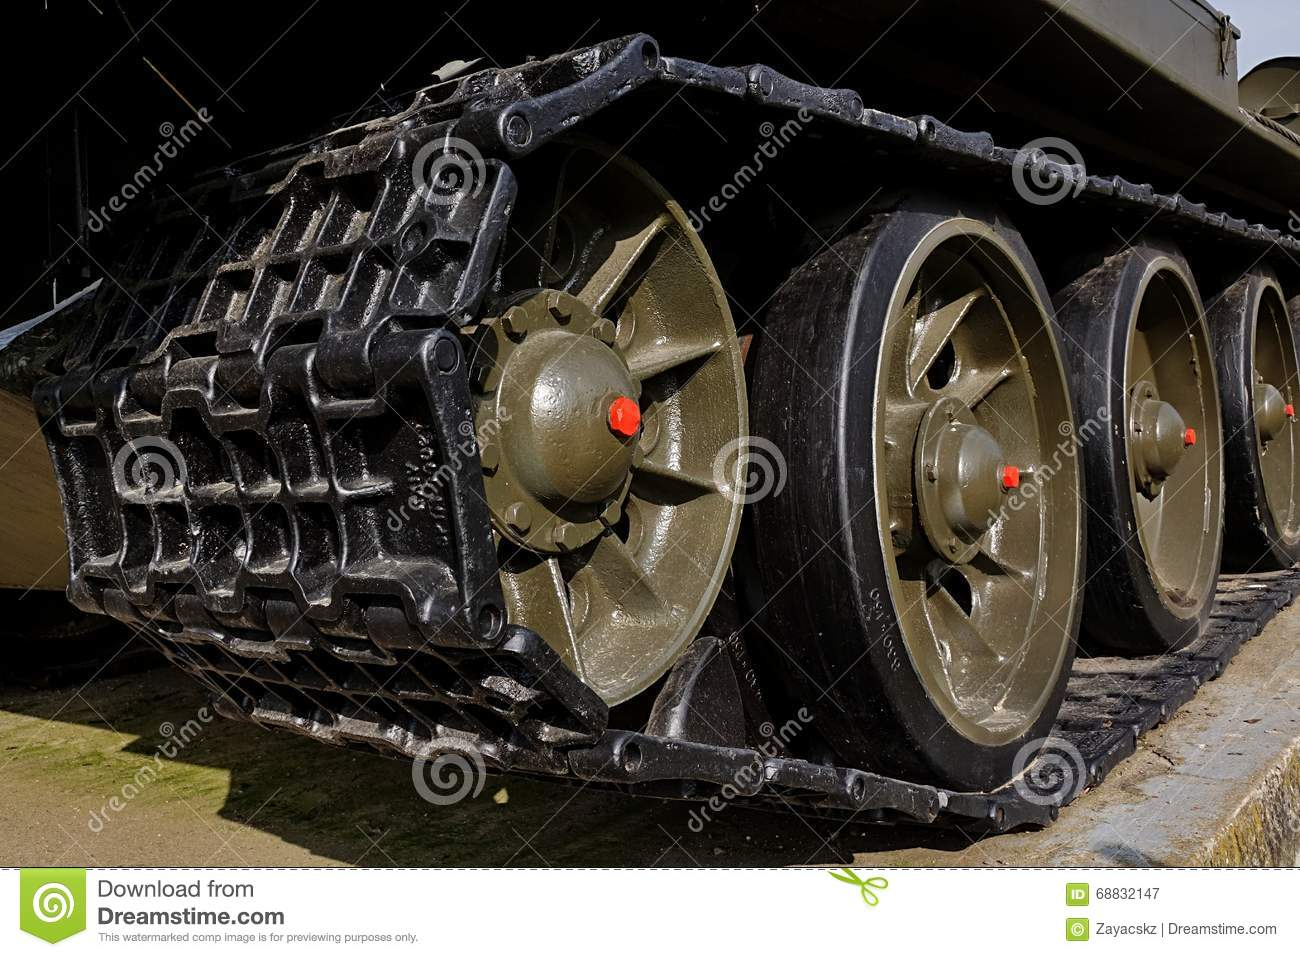 Russian tank t34 royalty free stock images image 23498479 - Front Part Of Tracks On T34 Ww2 Soviet Main Battle Tank Royalty Free Stock Photography